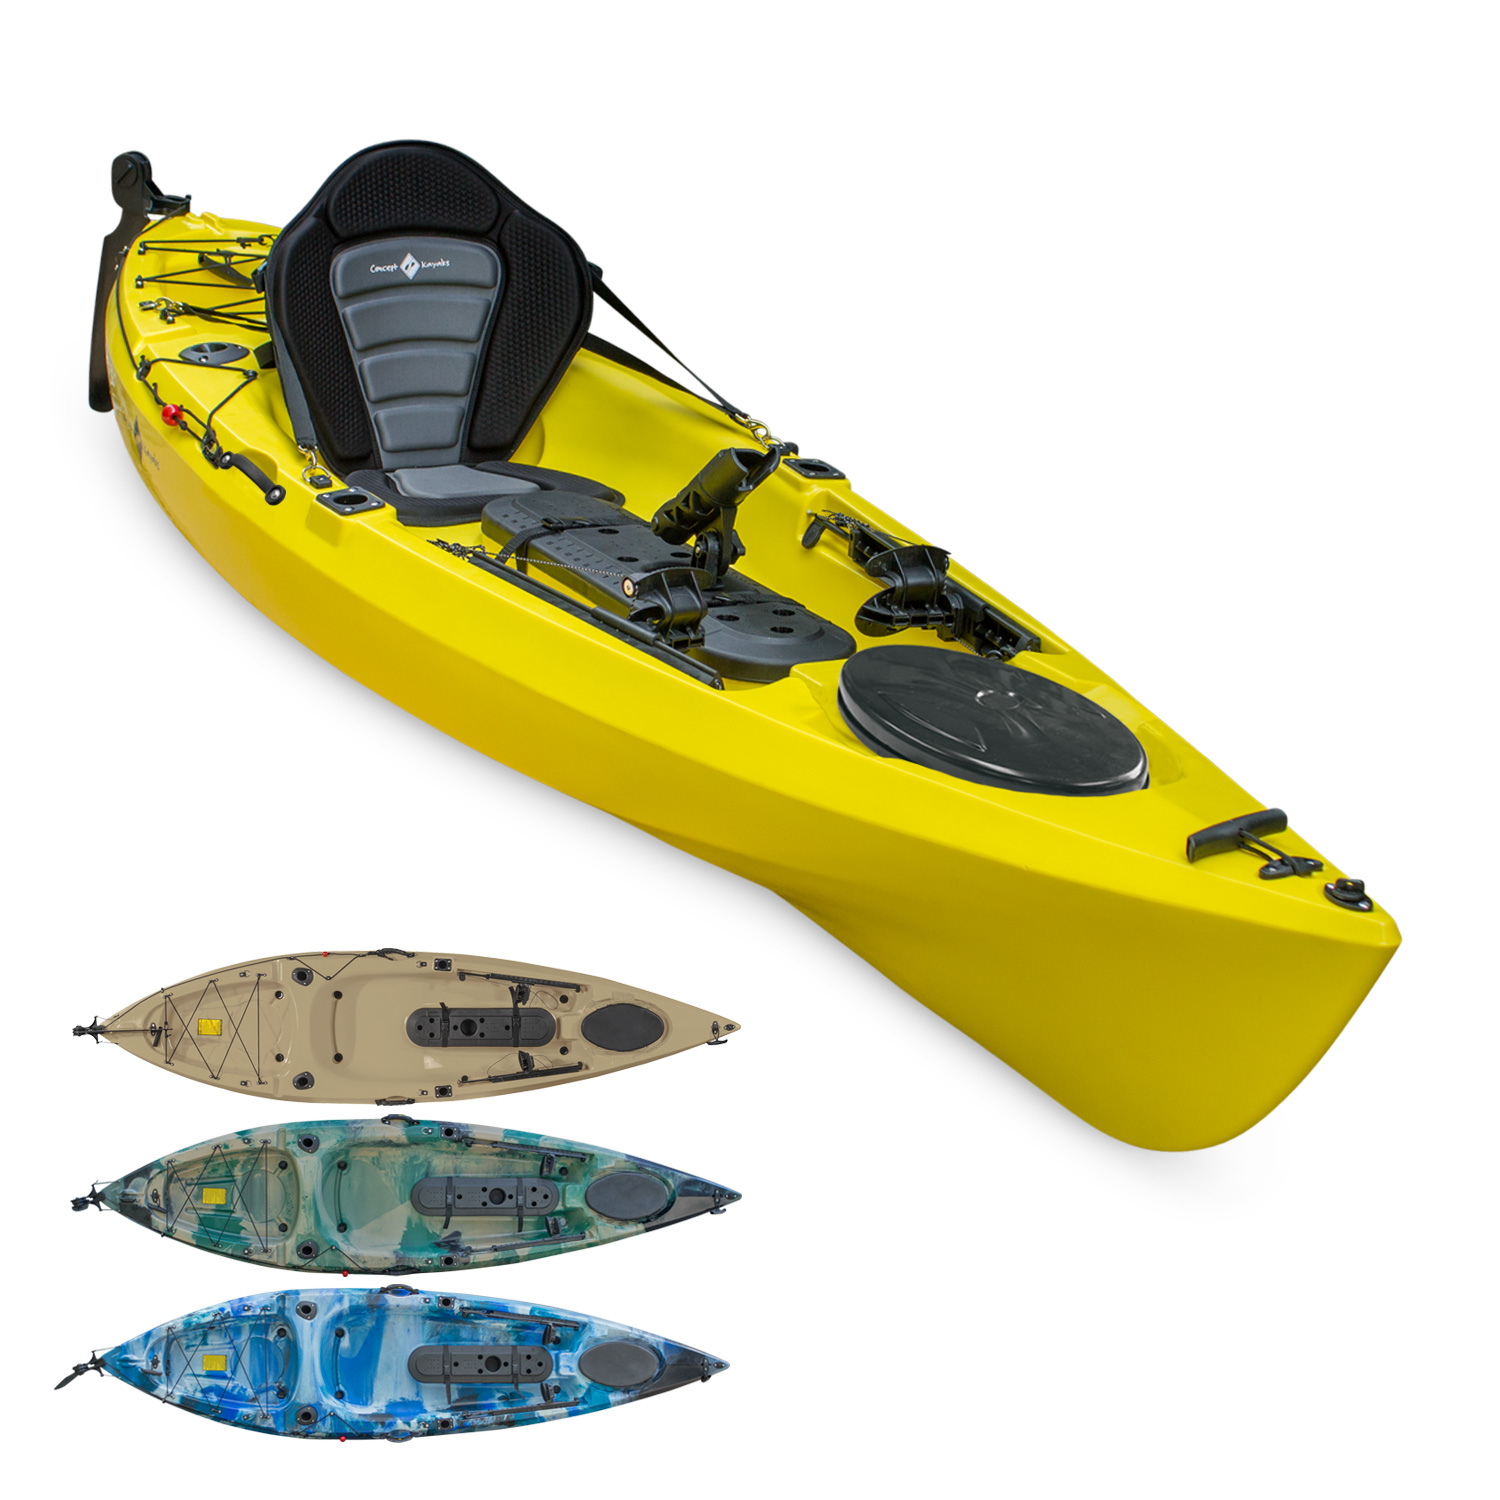 Kayak On Roof >> Concept Angler Explore 10 Sit-On-Top Kayak | All Kayak | Outdoor Hub